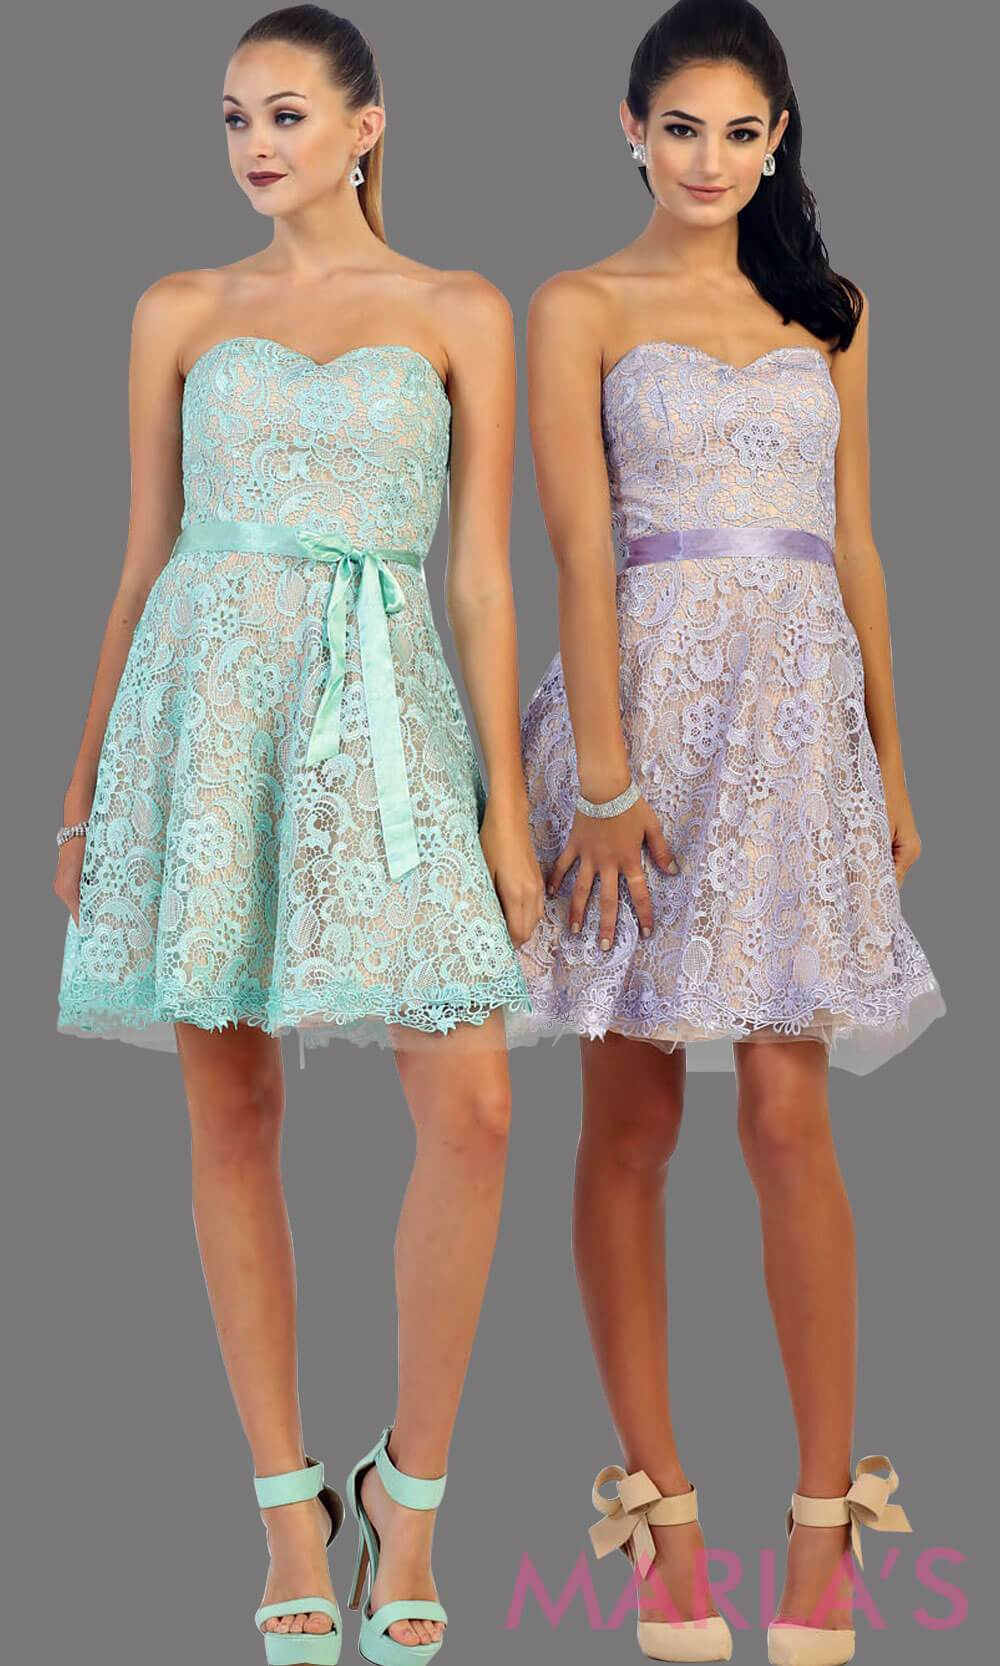 Short strapless lilac lace dress with satin ribbon. This light purple dress is perfect for grade 8 graduation, party dress, semi formal or even homecoming. It is available in plus sizes